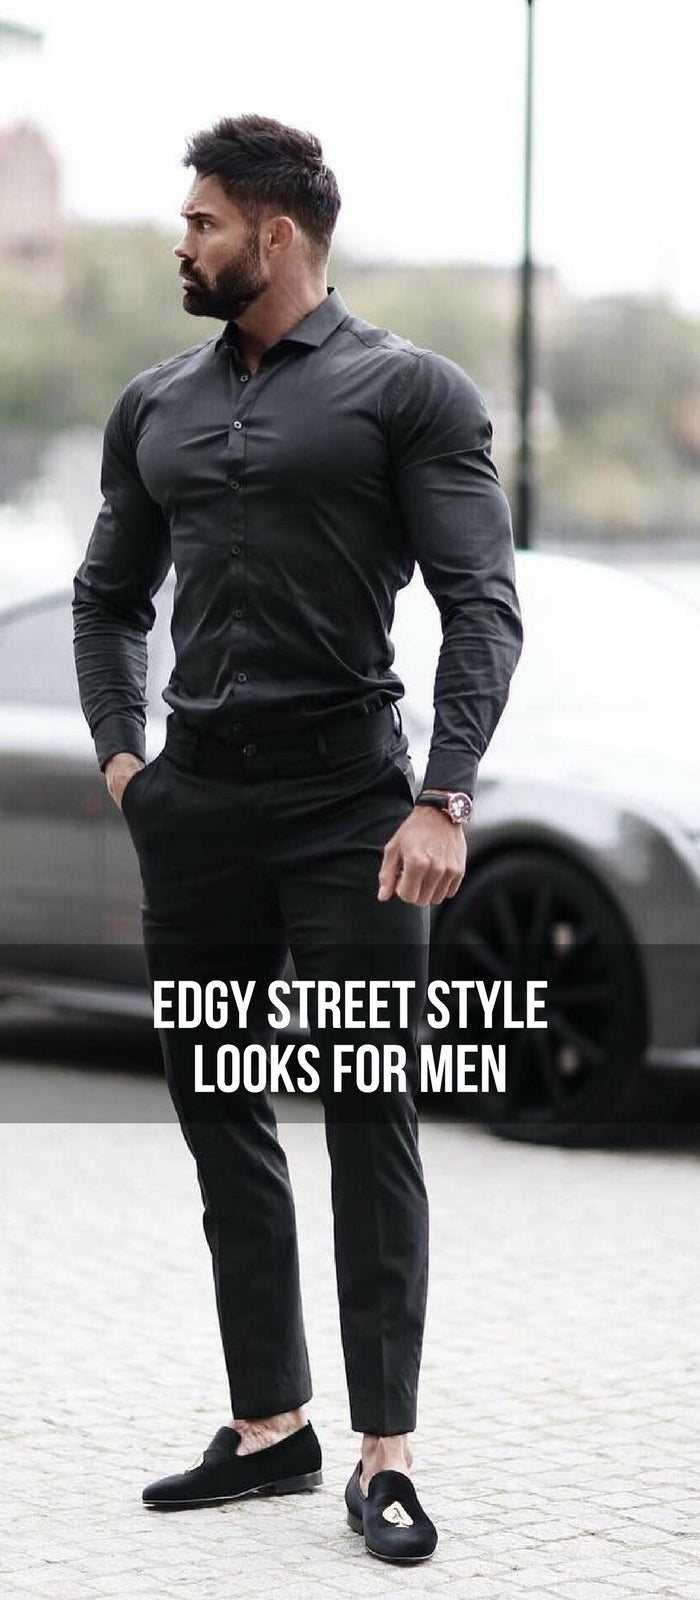 16 Edgy Street Style Looks To Help You Dress Sharp Lifestyle By Ps